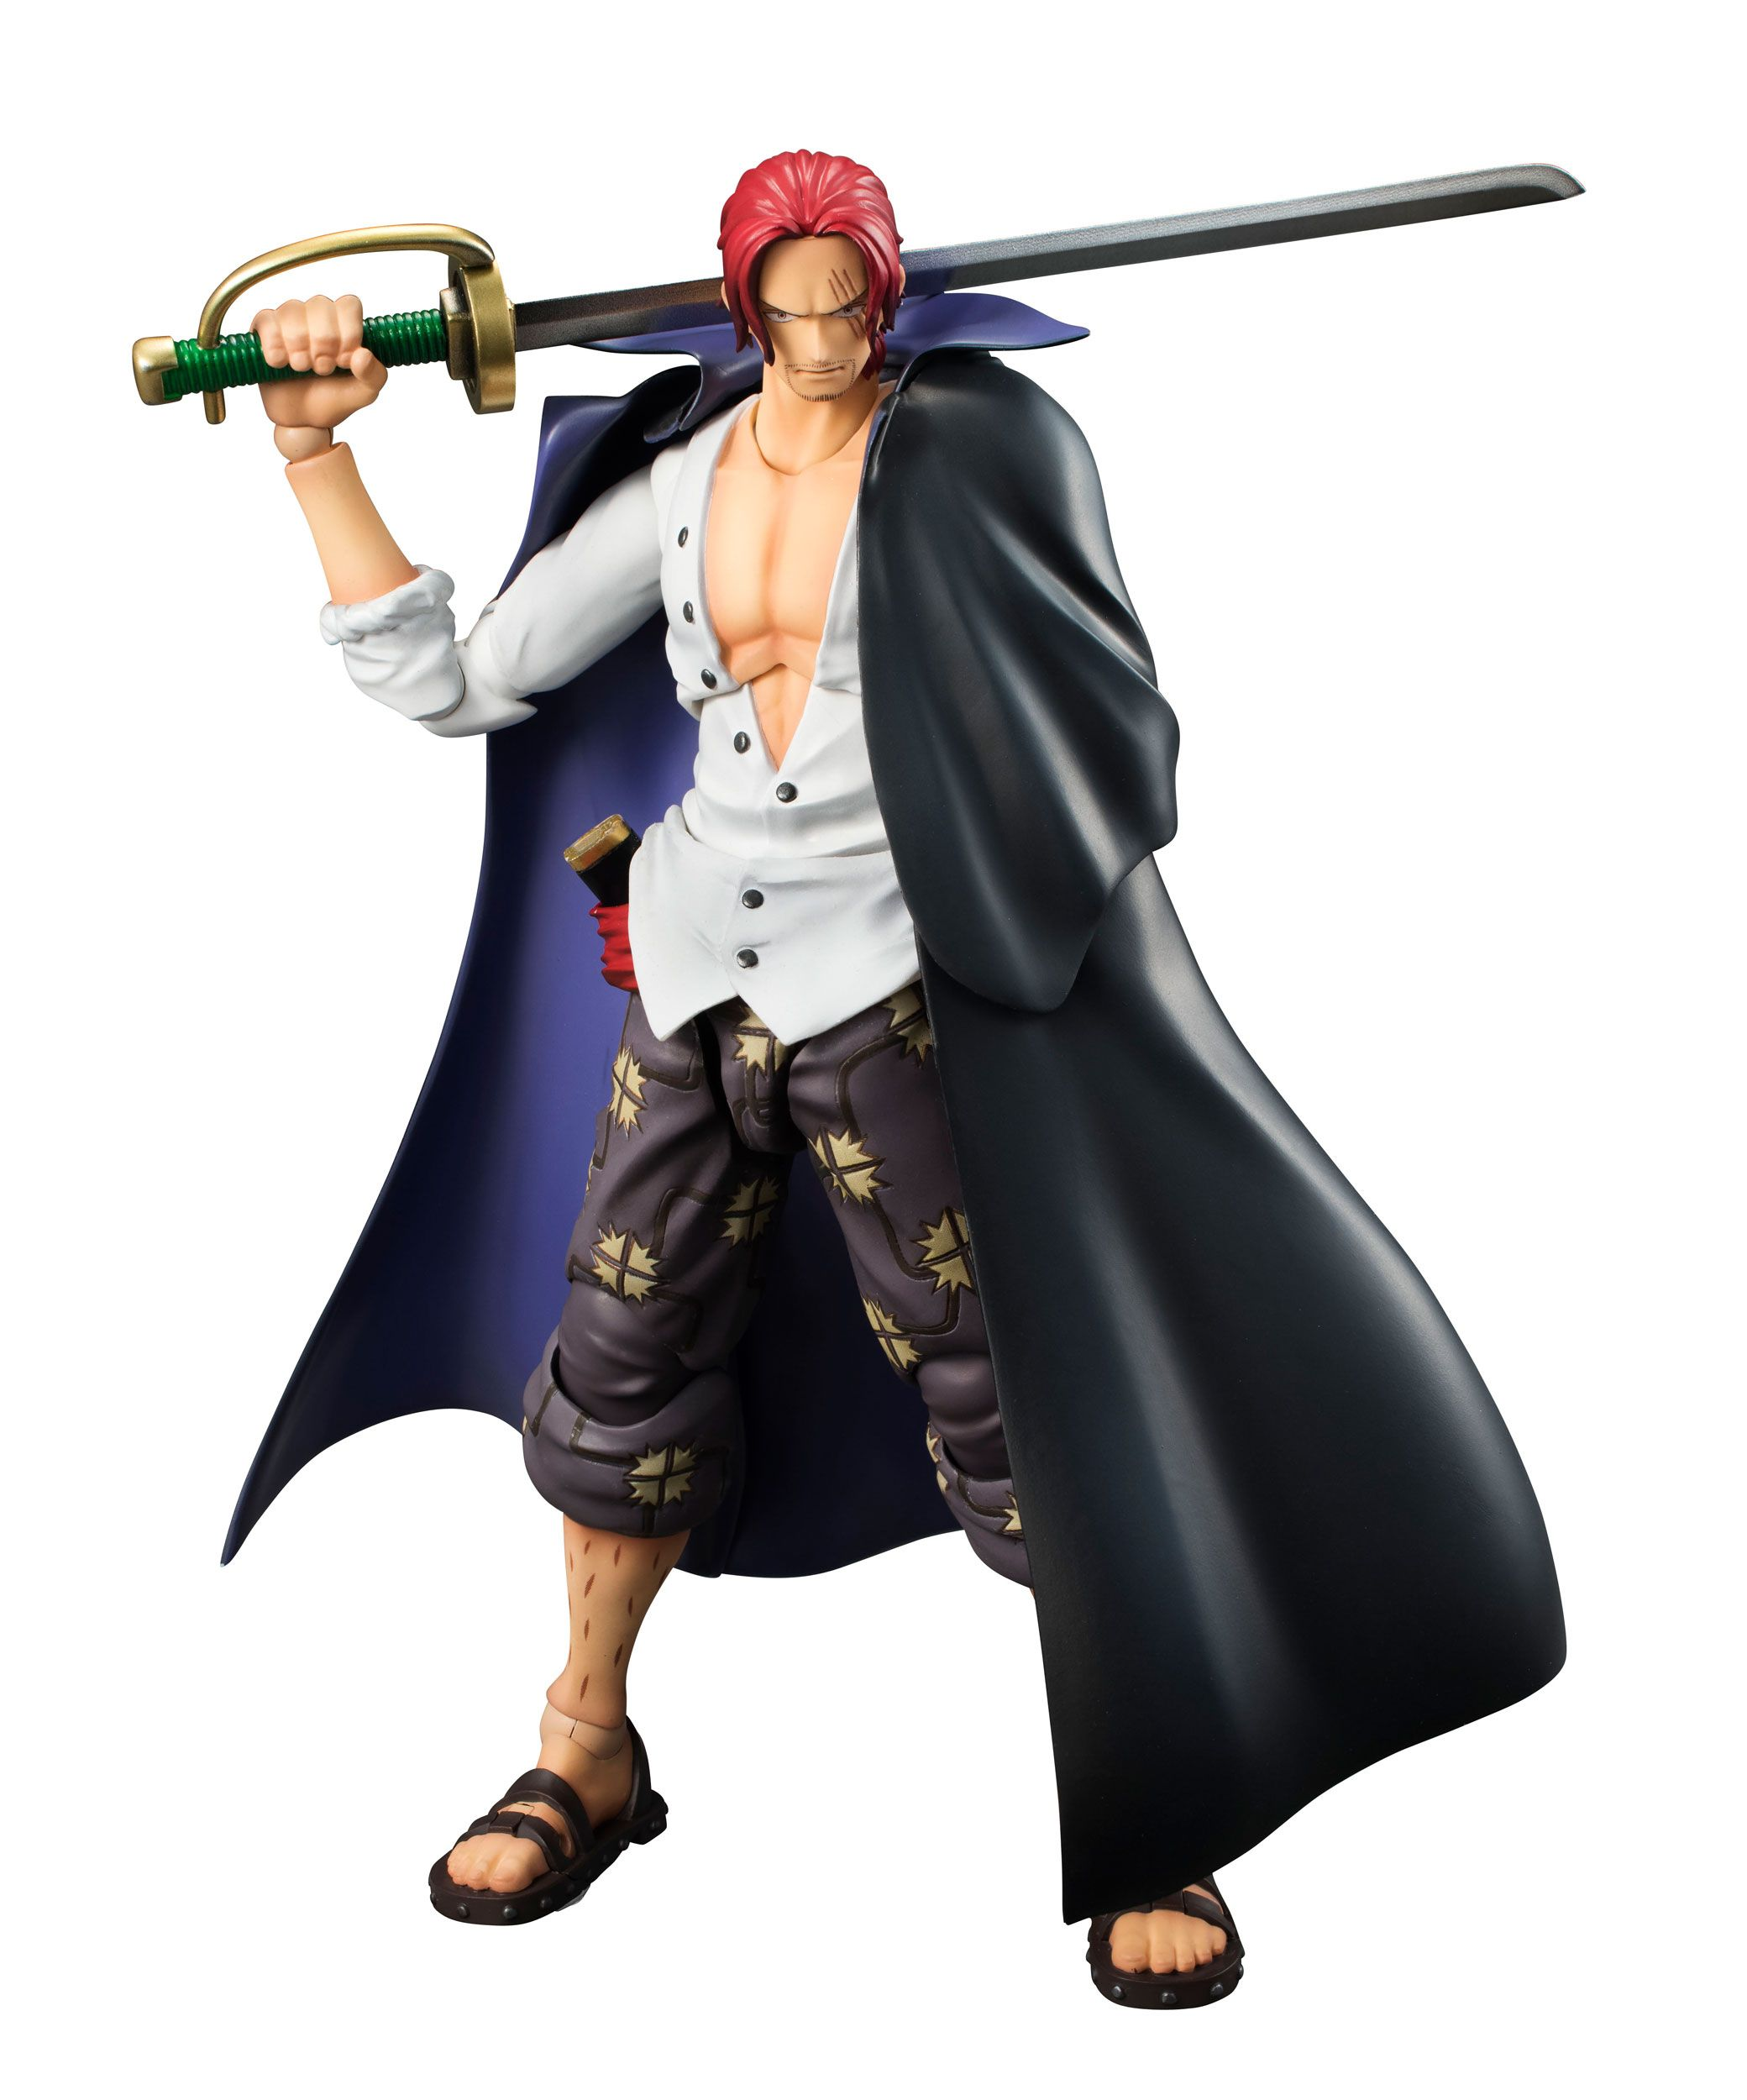 Shanks (One Piece) Variable Action Heroes Actionfigur 19cm